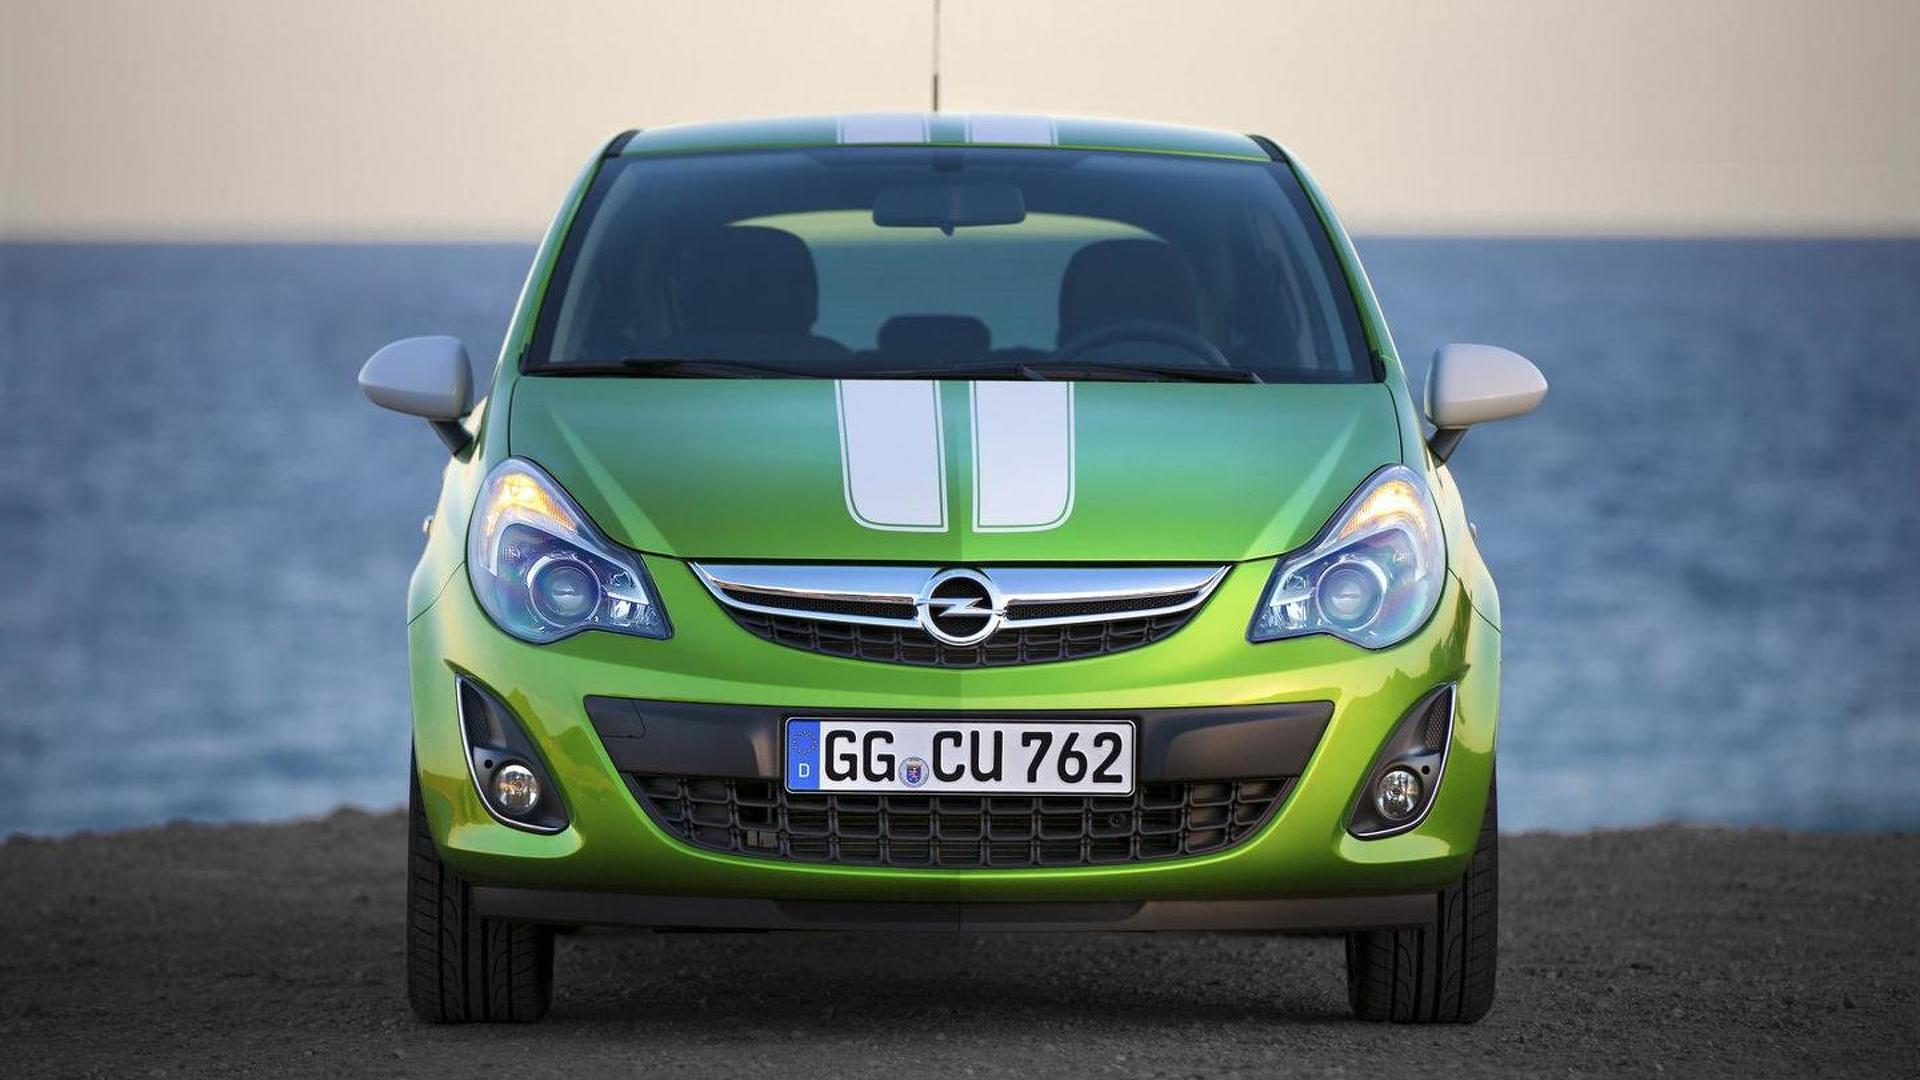 Opel Corsa 2010: beauty and style 49